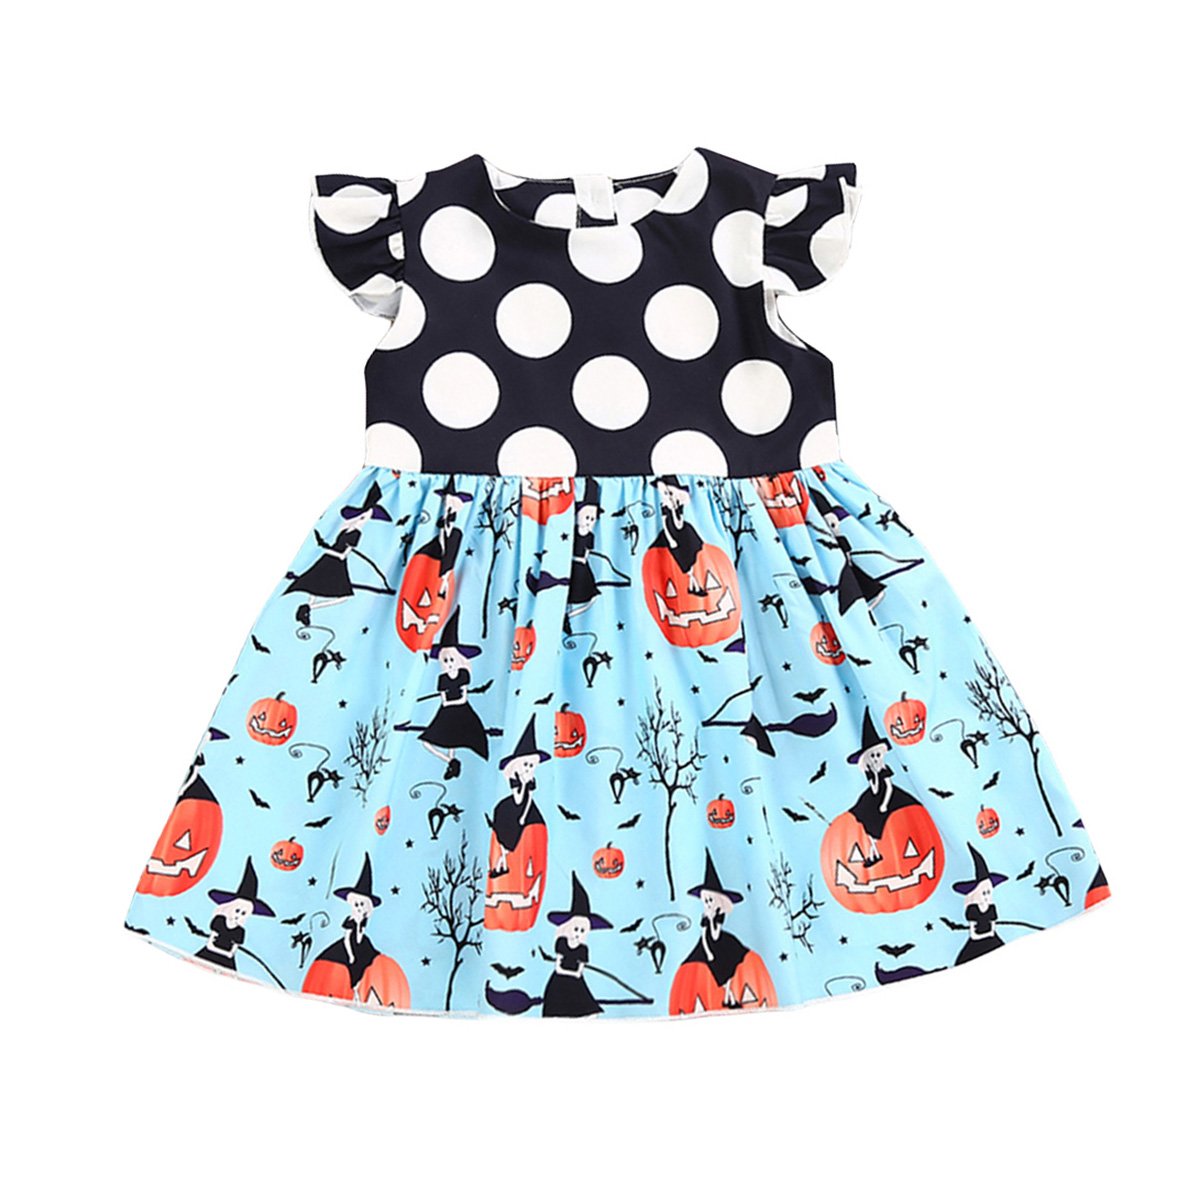 Toddler Baby Girls Dress Halloween Princess Party Pageant Dresses Sleeveless Cute Kids Clothes toddler kids baby girls princess dress party pageant wedding dresses with waistband